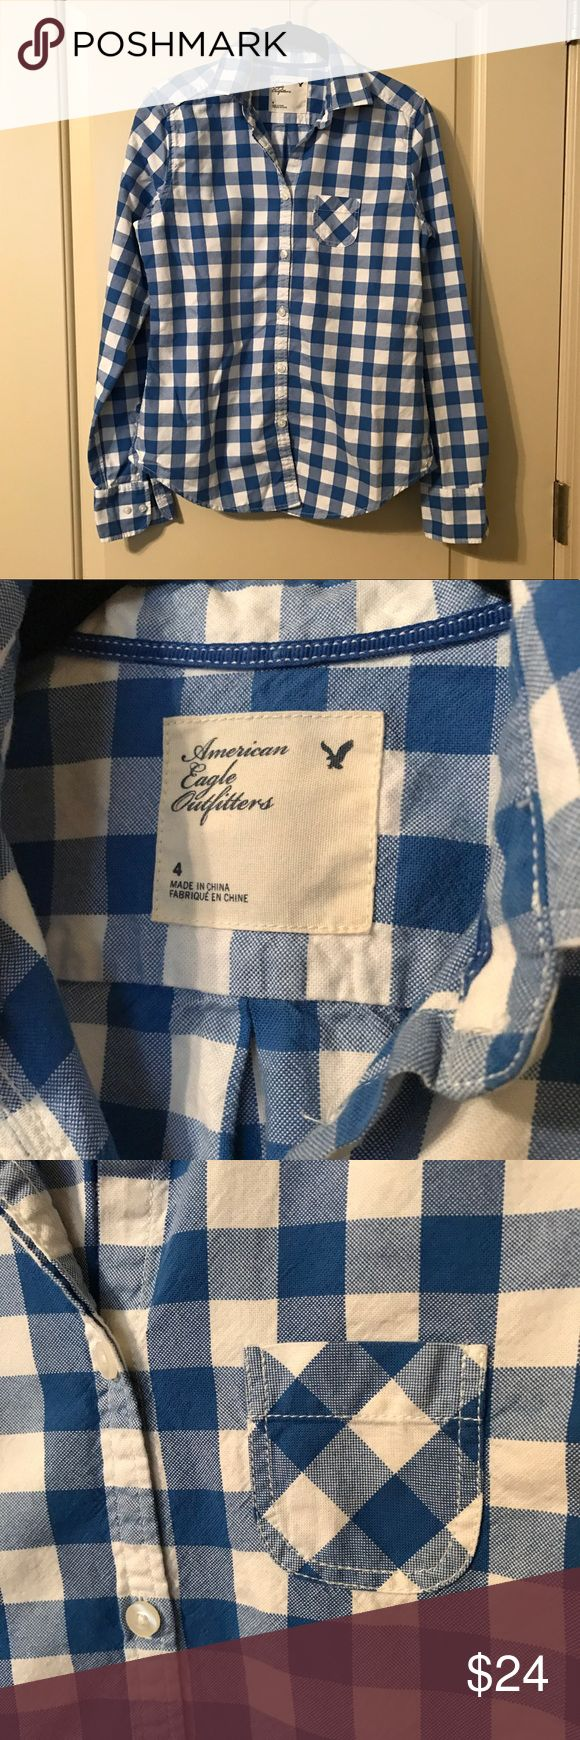 AE Blue and White Women's Oxford Shirt American Eagle women's Blue and White Oxford Button-up Shirt Size 4 Worn a couple of times, washed on delicate and hung to dry, great condition! 100% Cotton American Eagle Outfitters Tops Button Down Shirts